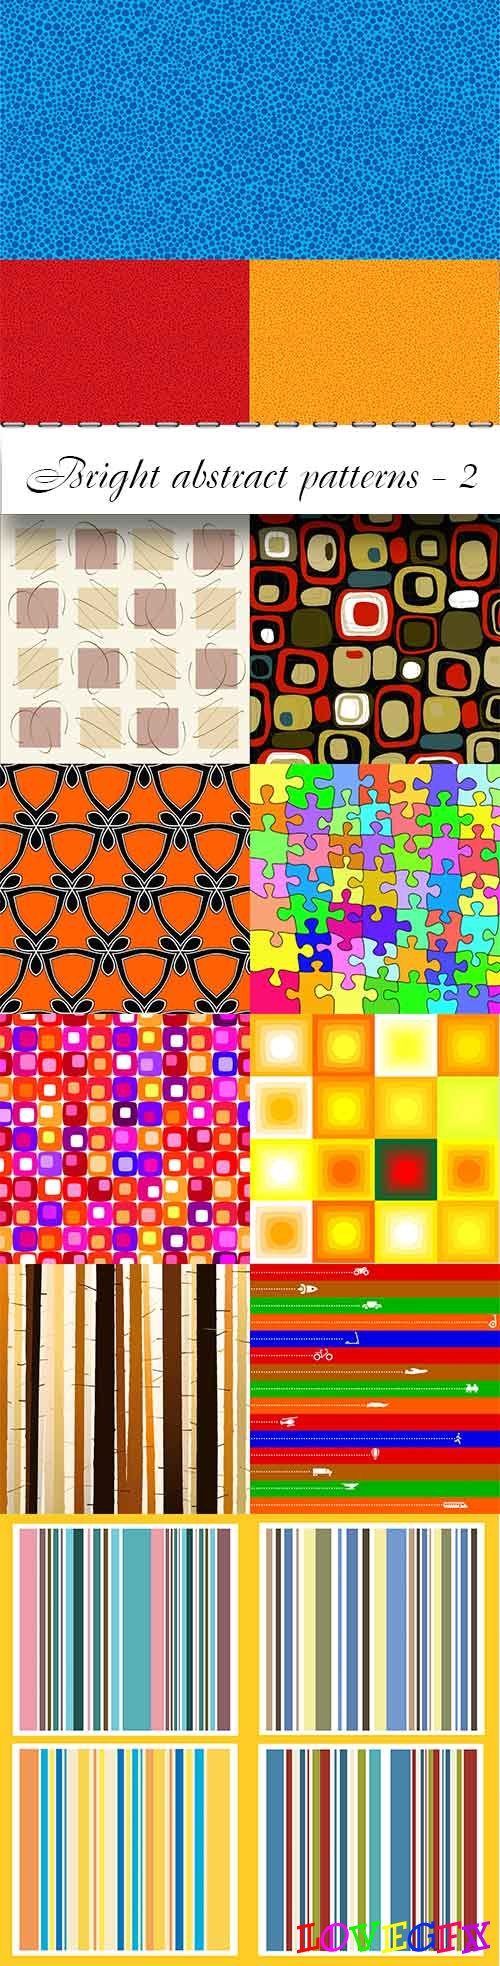 Bright abstract patterns - 2